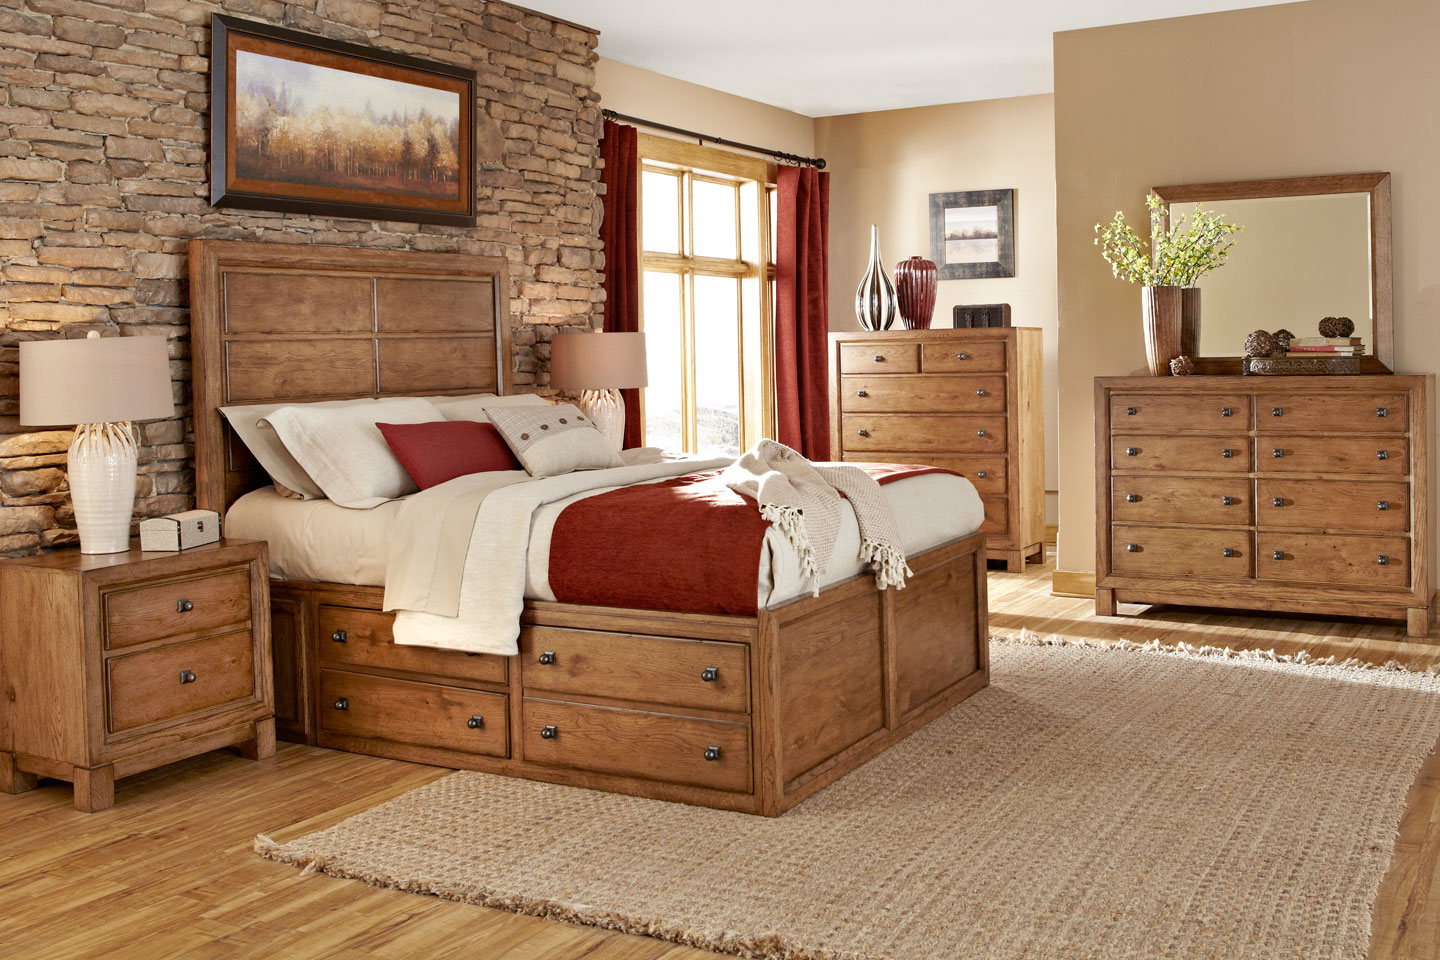 Newbury Wood Bedroom Furniture Collection - Wood Bedroom Furniture